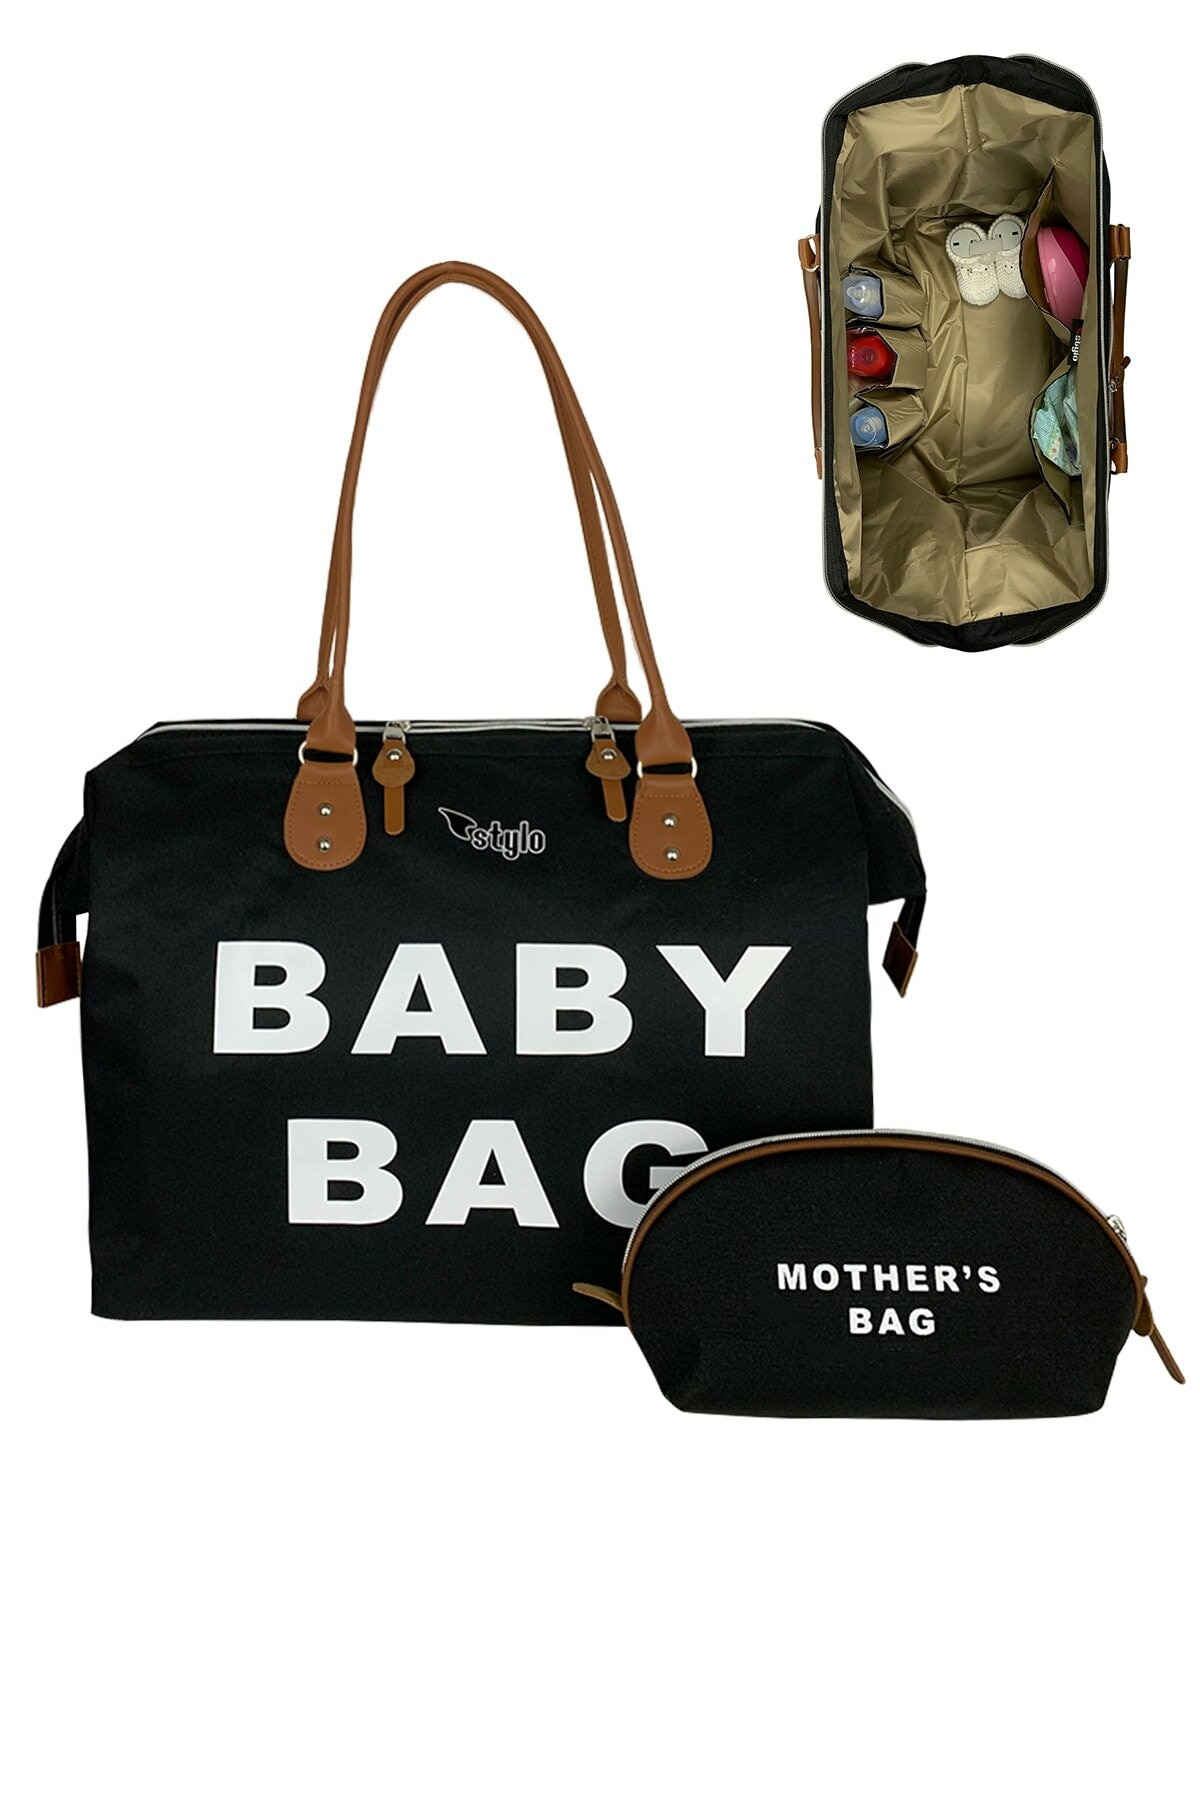 Stylo Baby Bag Mother Baby Care Women 'S Bag-Black, Pregnant, Large Capacity, Quality, Practical, Fashion, Luxury Brand